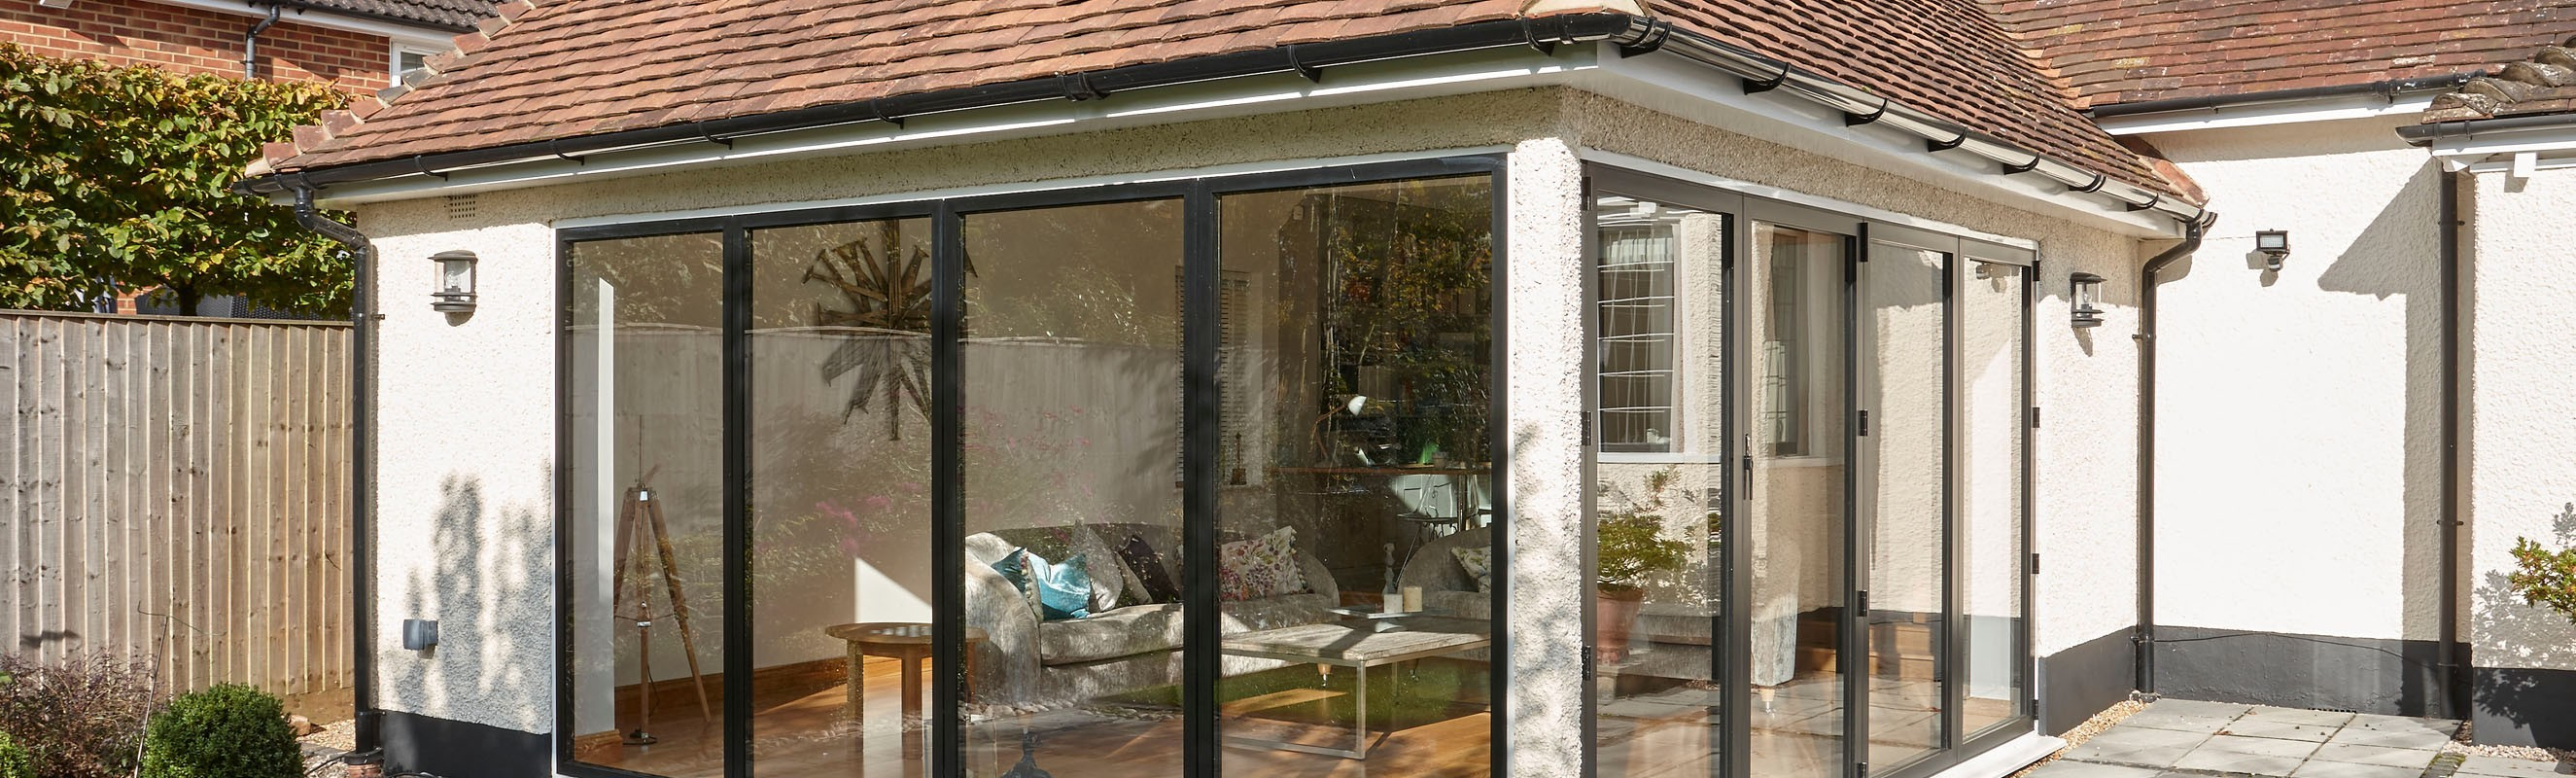 Bi-fold Doors from Vevo